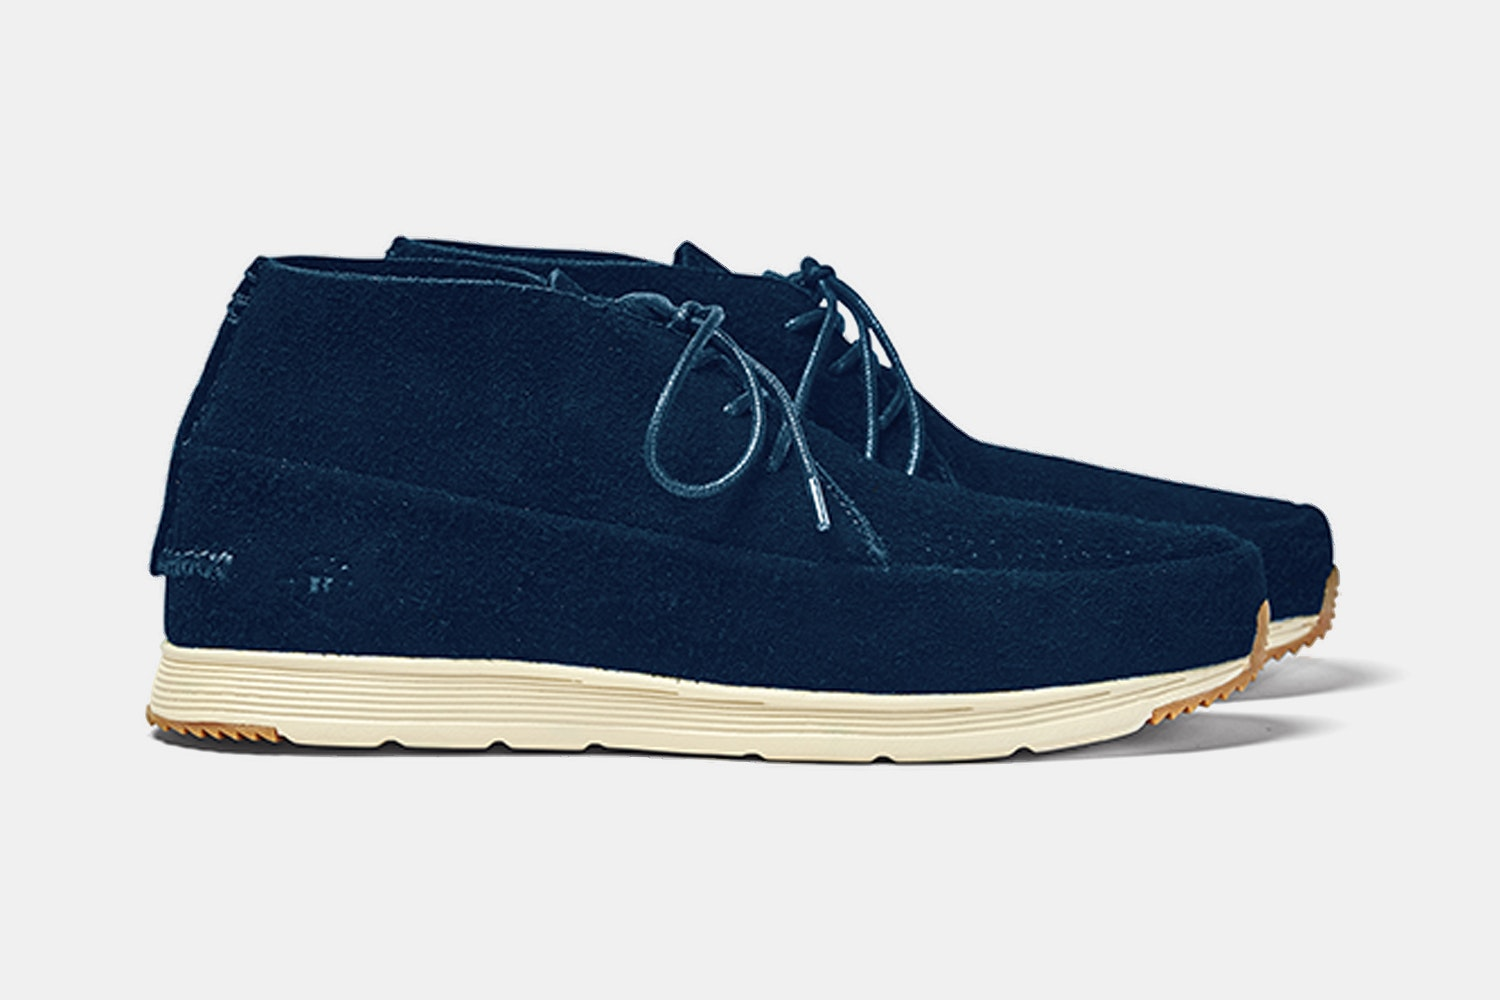 Navy/bone shoe